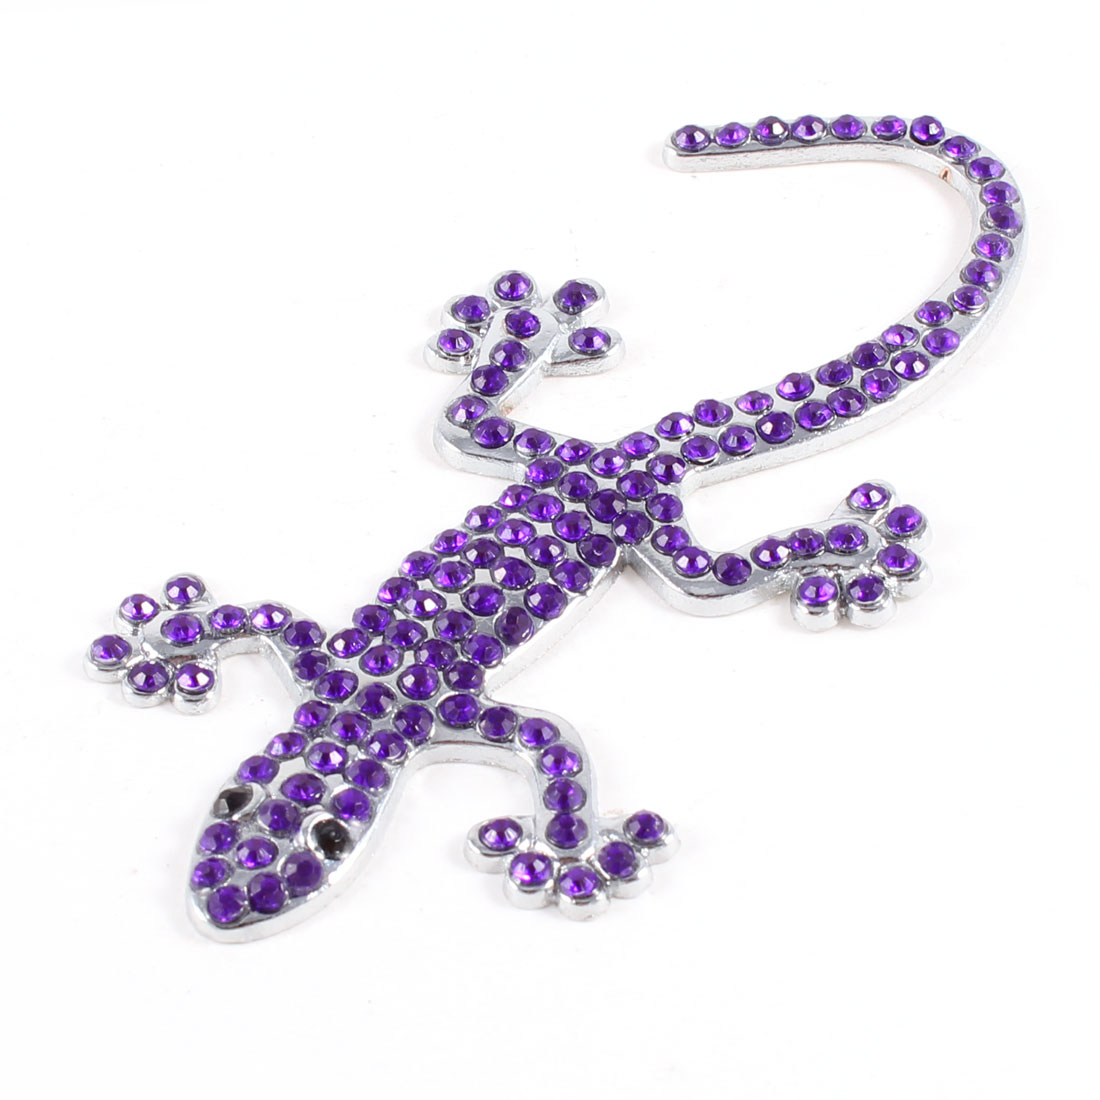 Cars Purple Silver Tone Metal 3D Gecko Shaped Adhesive Paster Badge Sticker